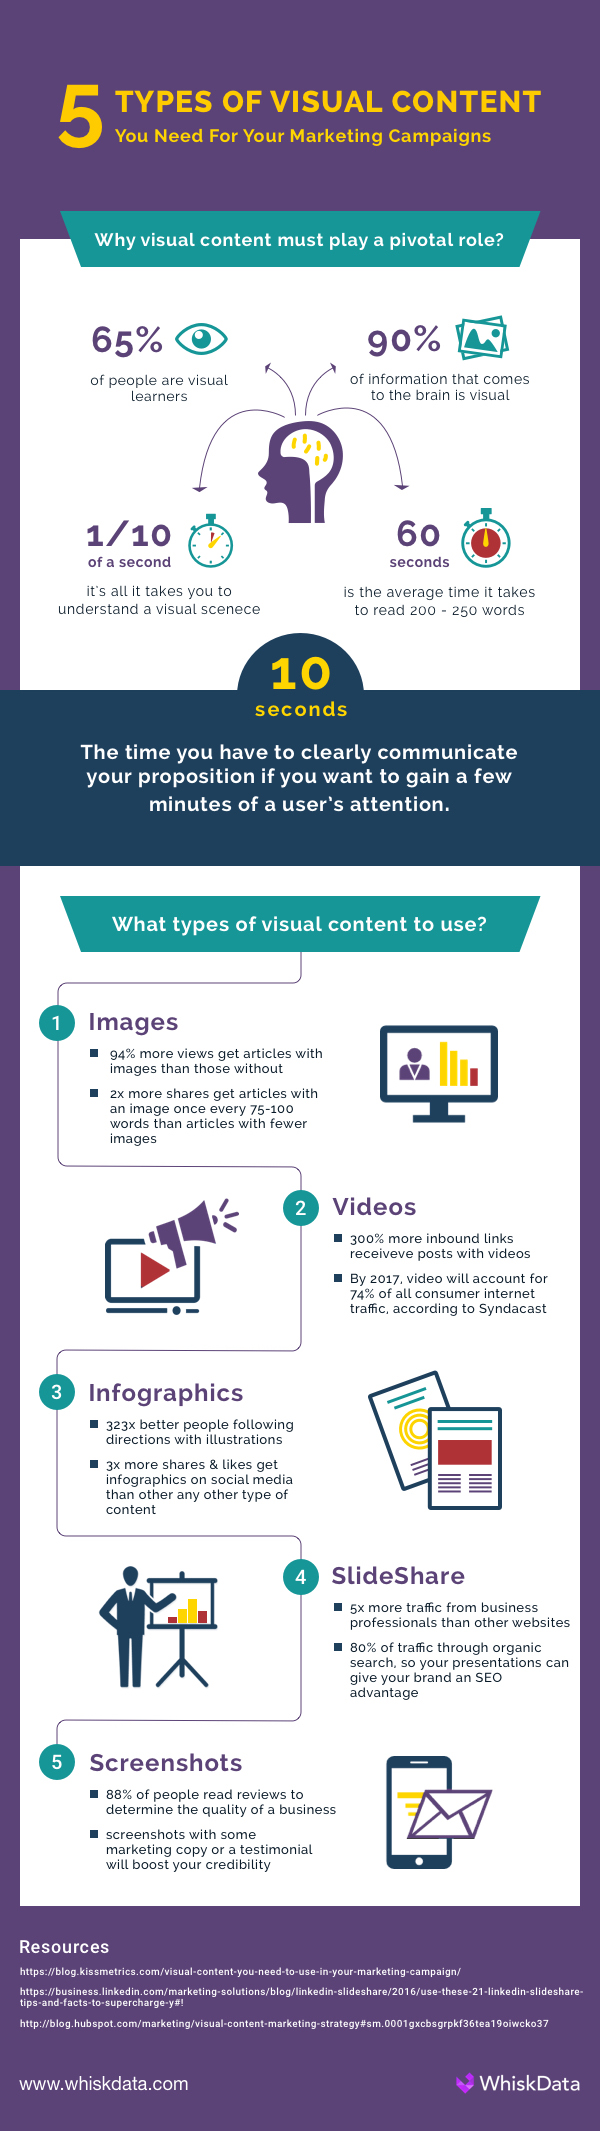 Infographic outlines different types of visual content considerations